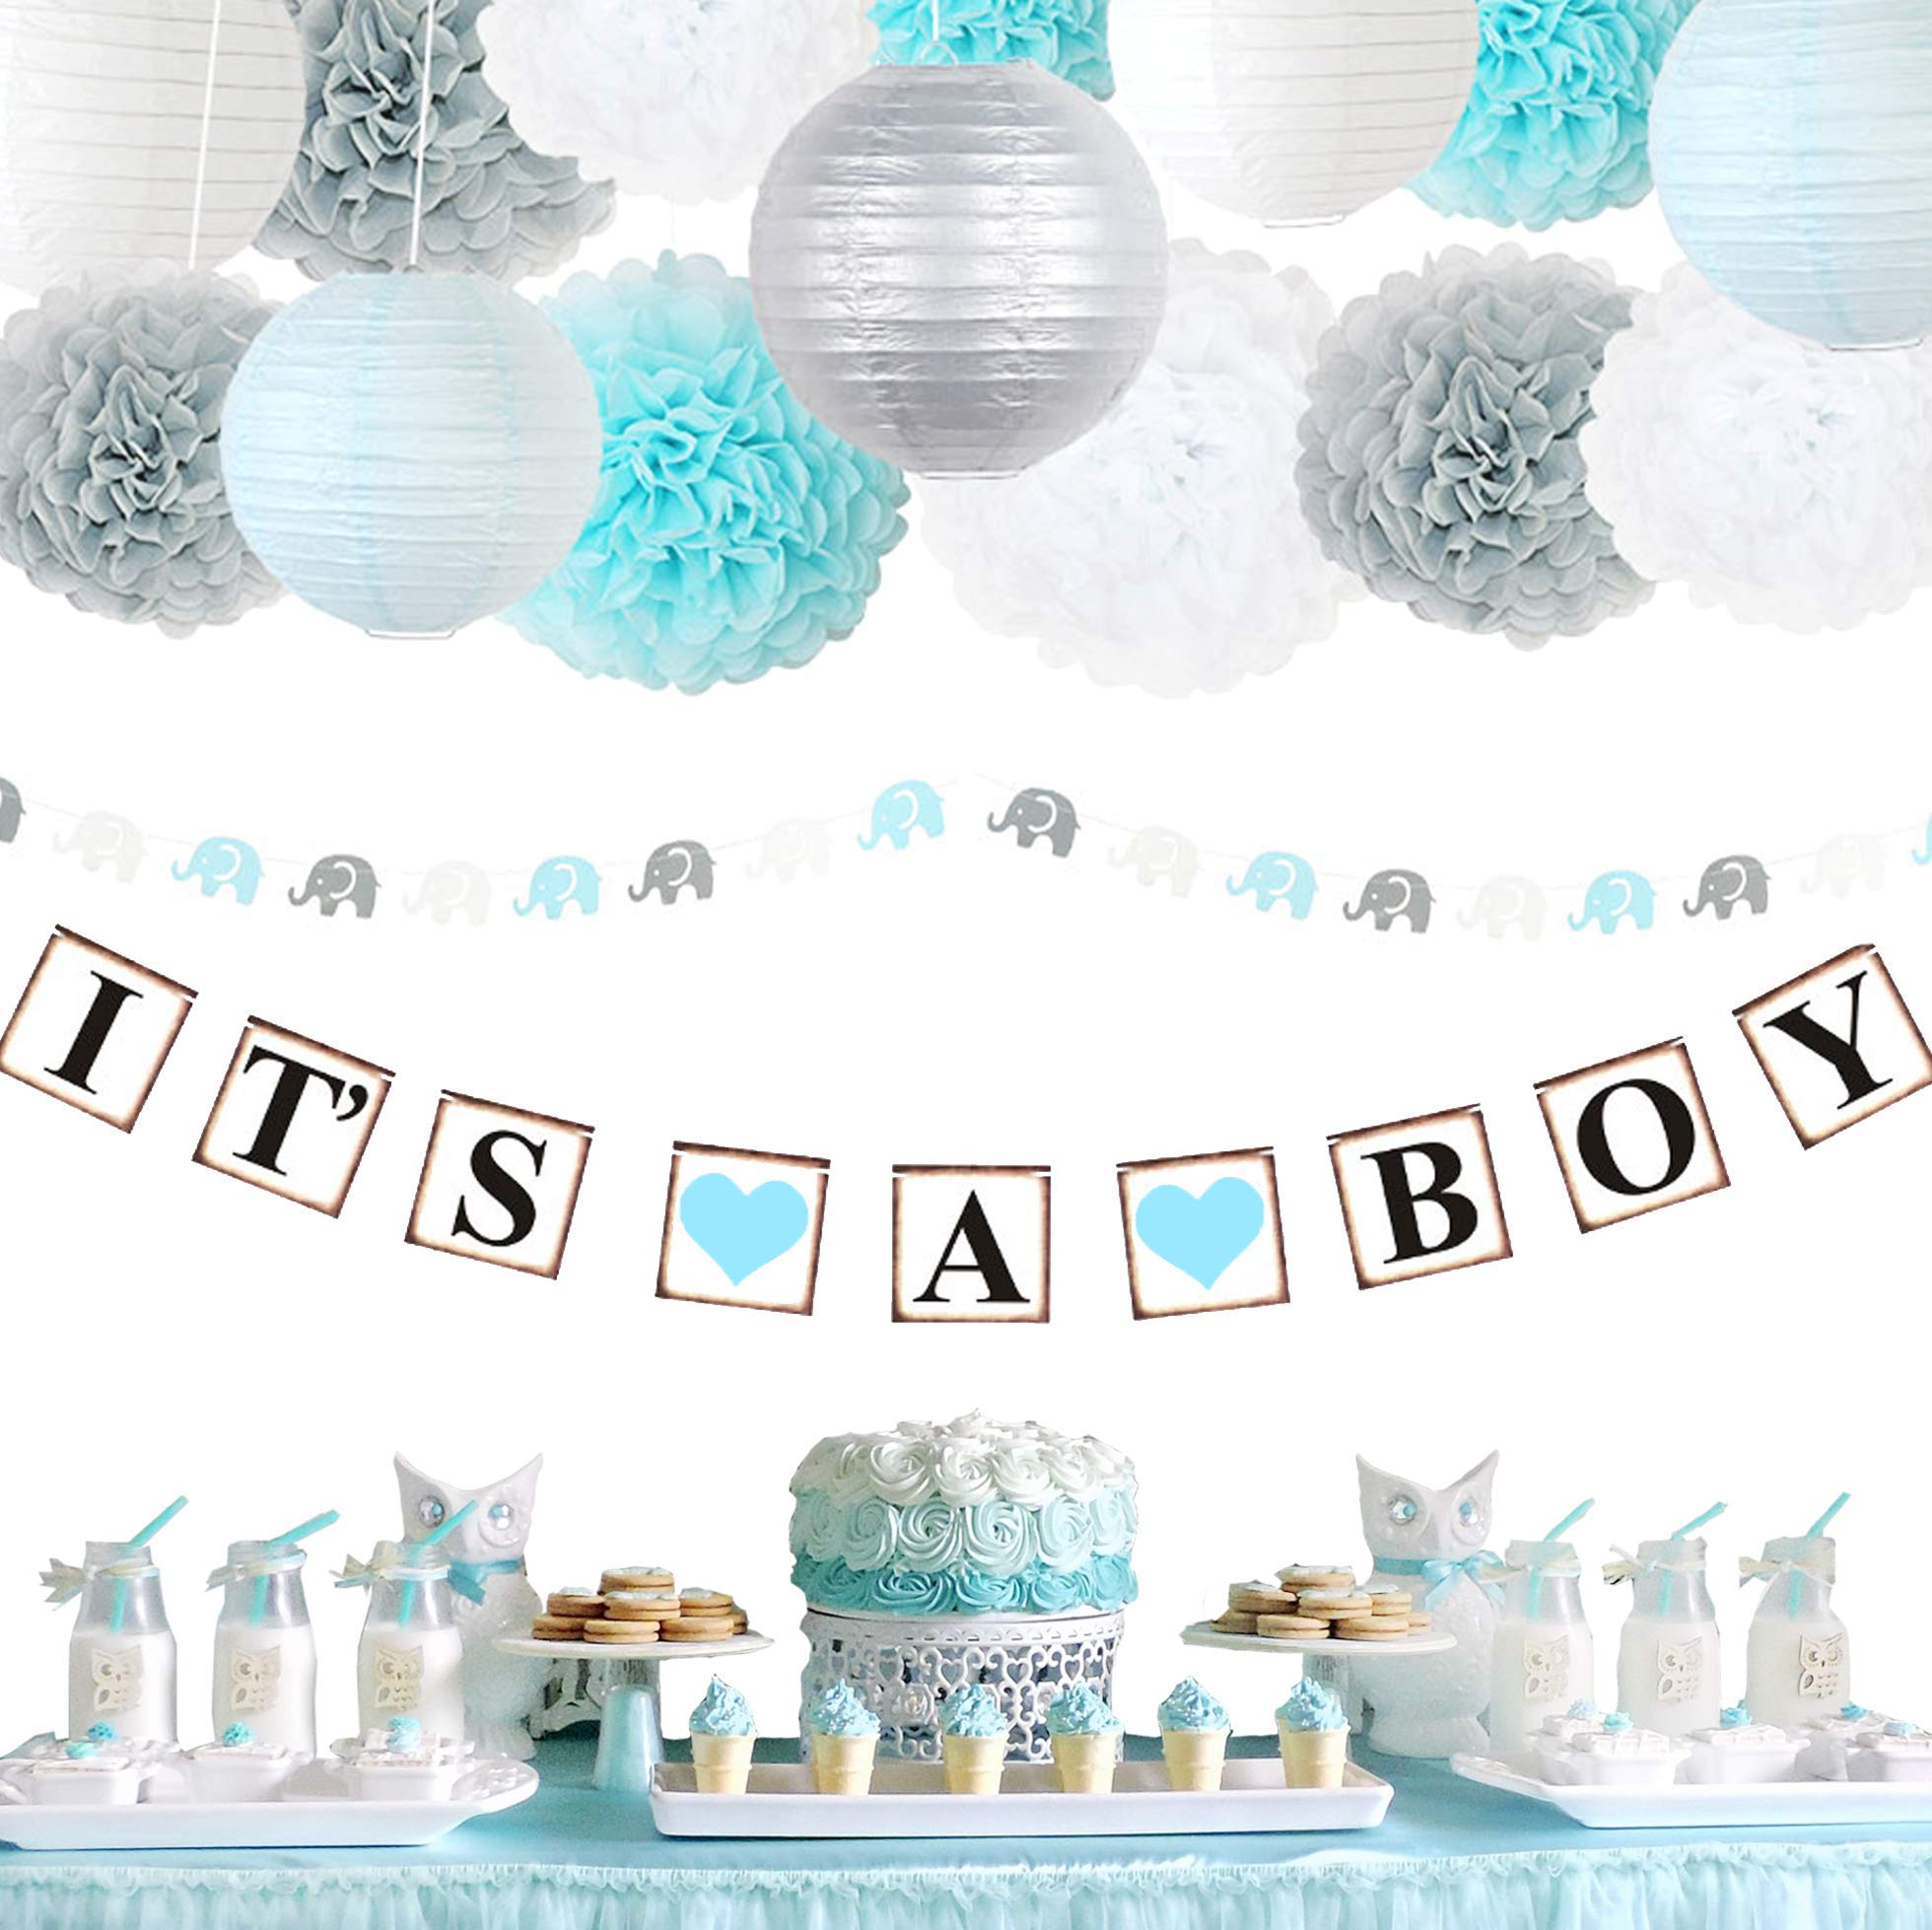 LeSparkle Baby Shower Decorations For Boy | Premium Quality IT'S A BOY Banner | Elephant Garland | Flower Pom Poms | Paper Lanterns (Light Blue White Grey) by LeSparkle creations